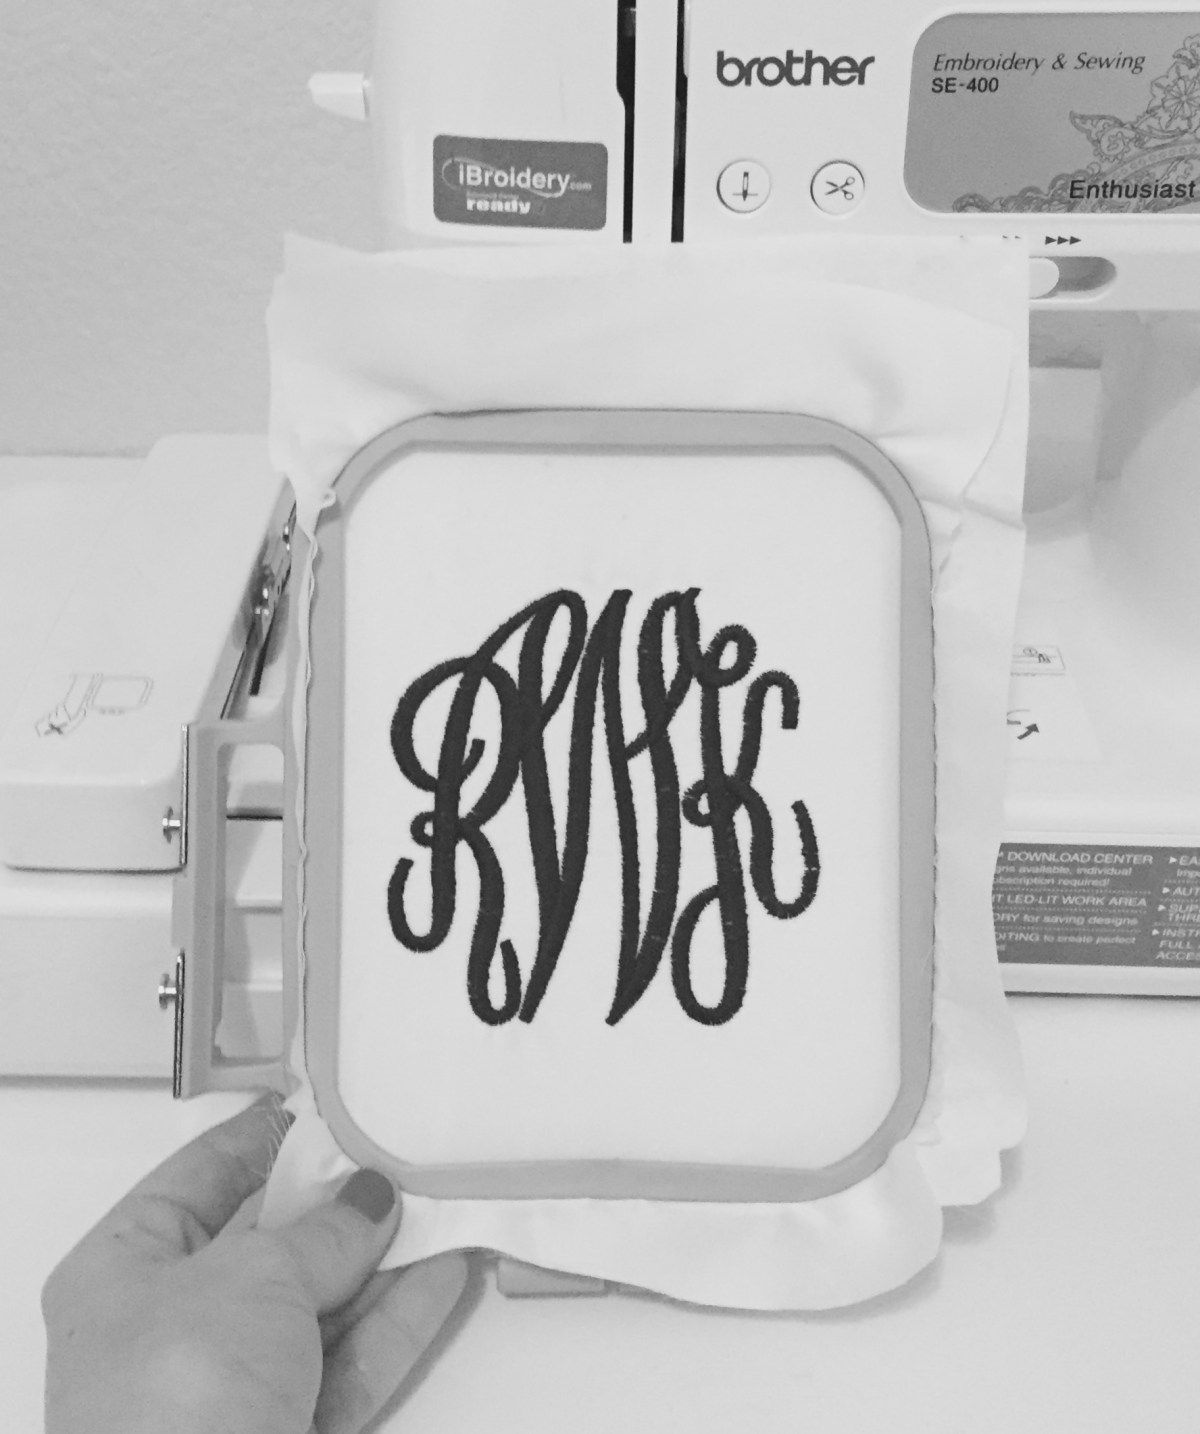 How To Embroider The Classic Monogram Sewing machine